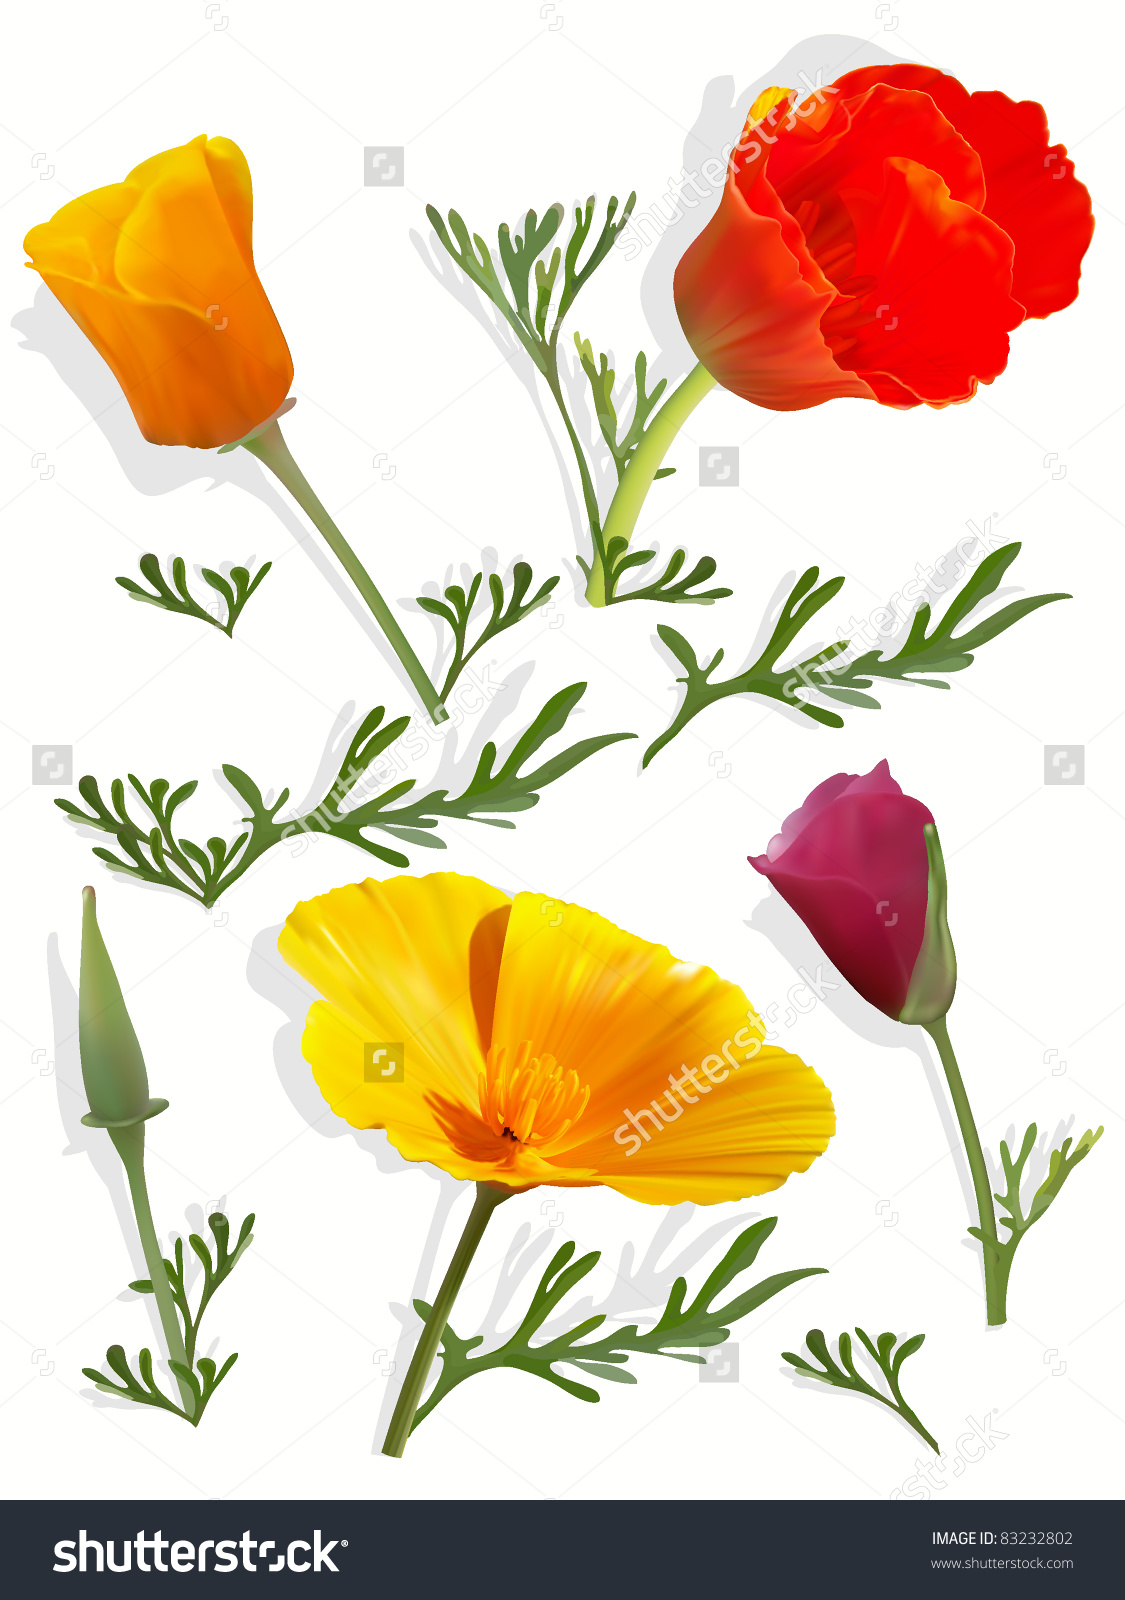 Set California Poppy Flowers Stock Vector 83232802.